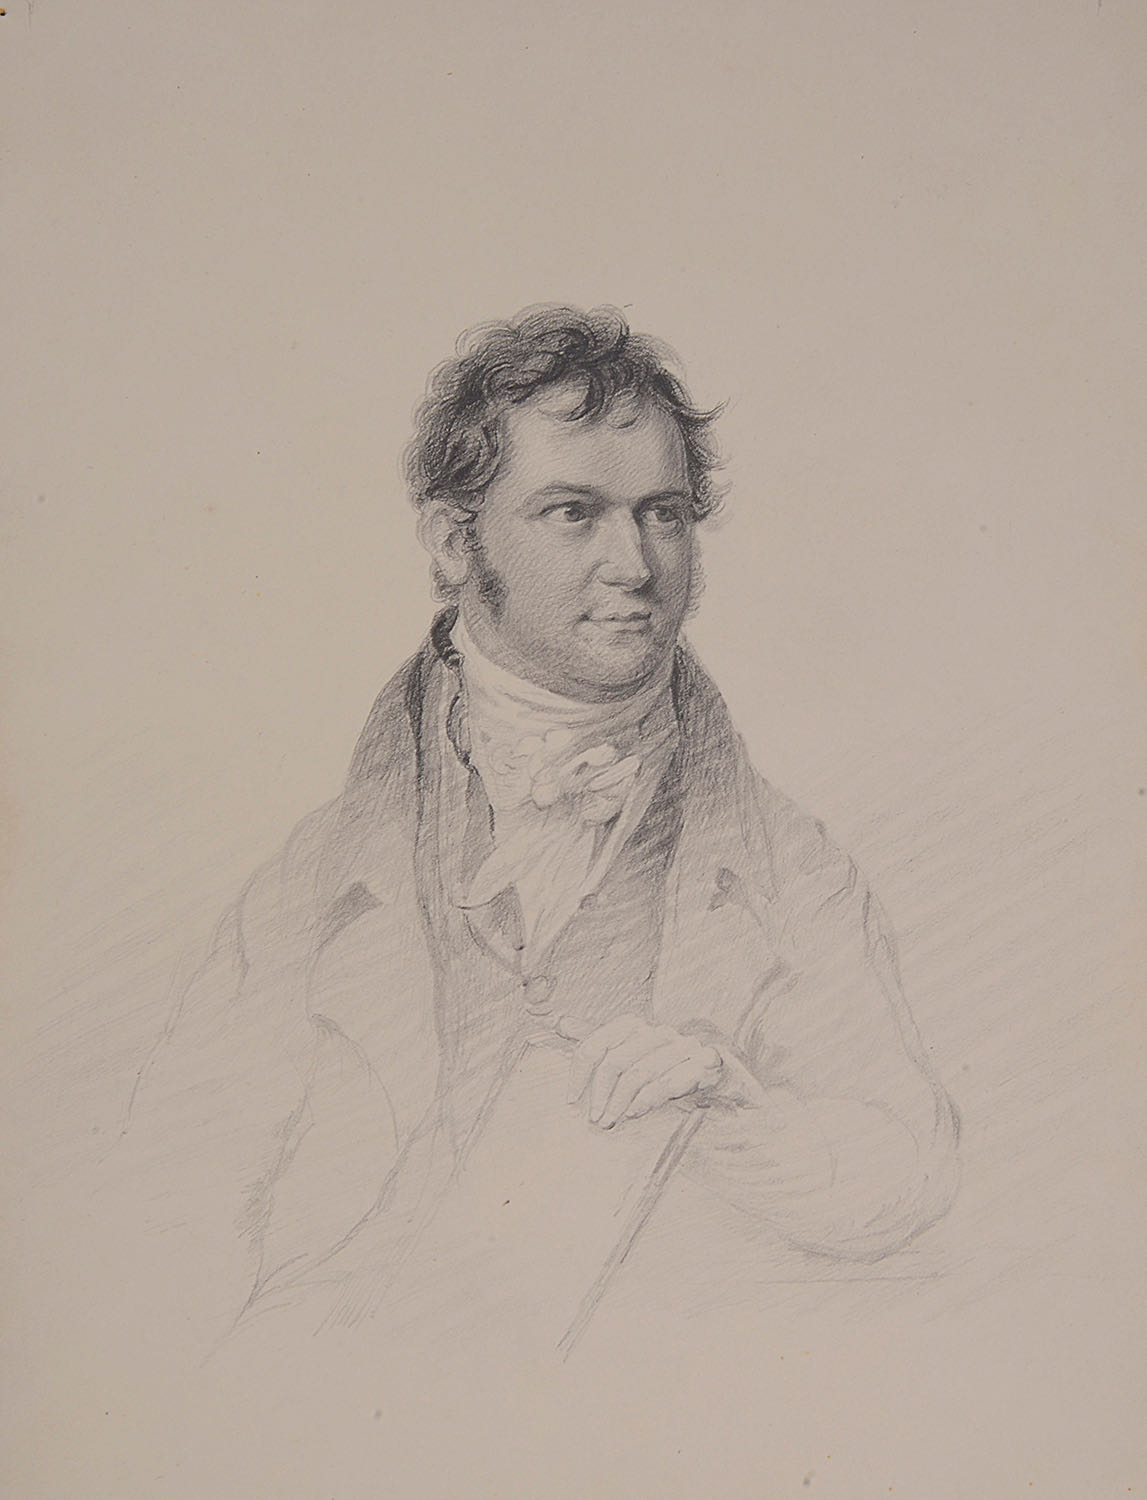 Lot 39 - Early 19th c. drawings, watercolours and etchings of portraits, botanical studies; one other